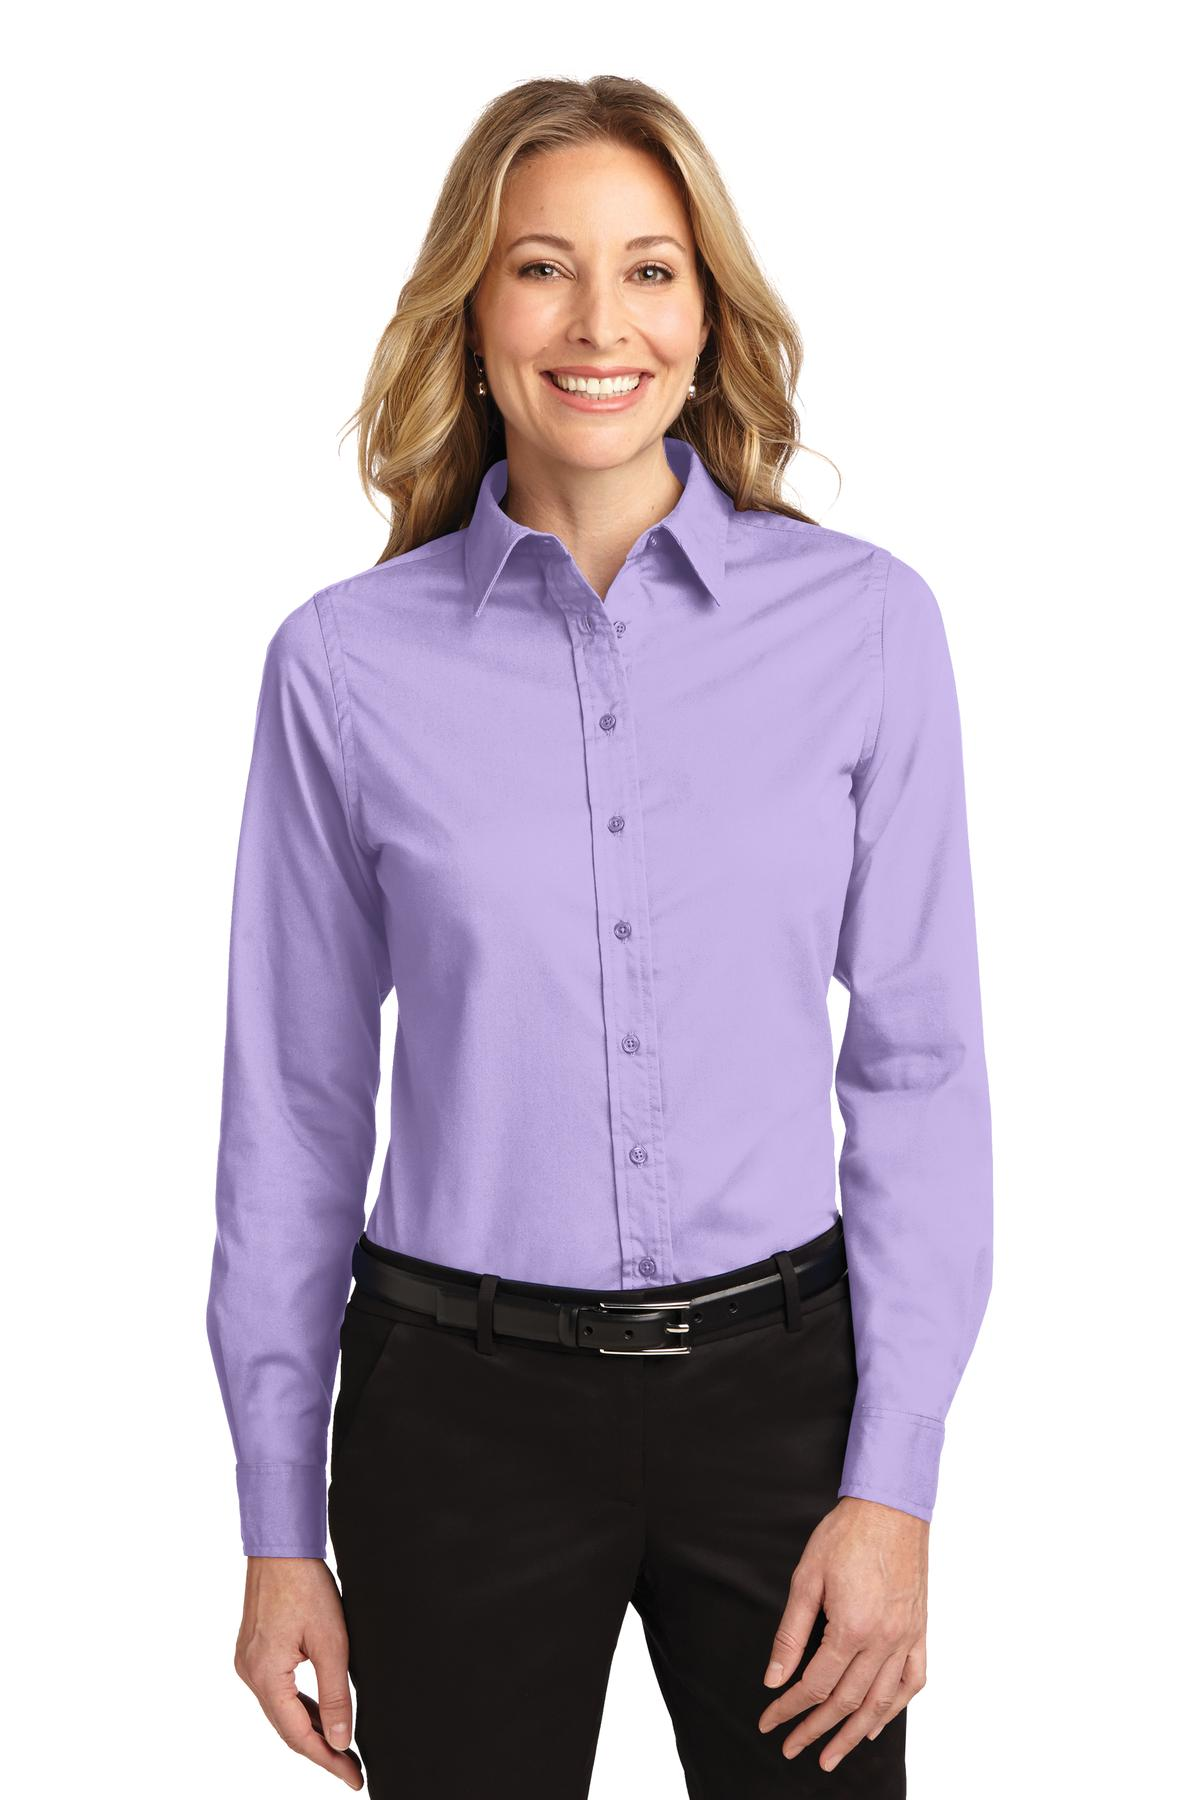 Port Authority ®  Ladies Long Sleeve Easy Care Shirt.  L608 - Bright Lavender